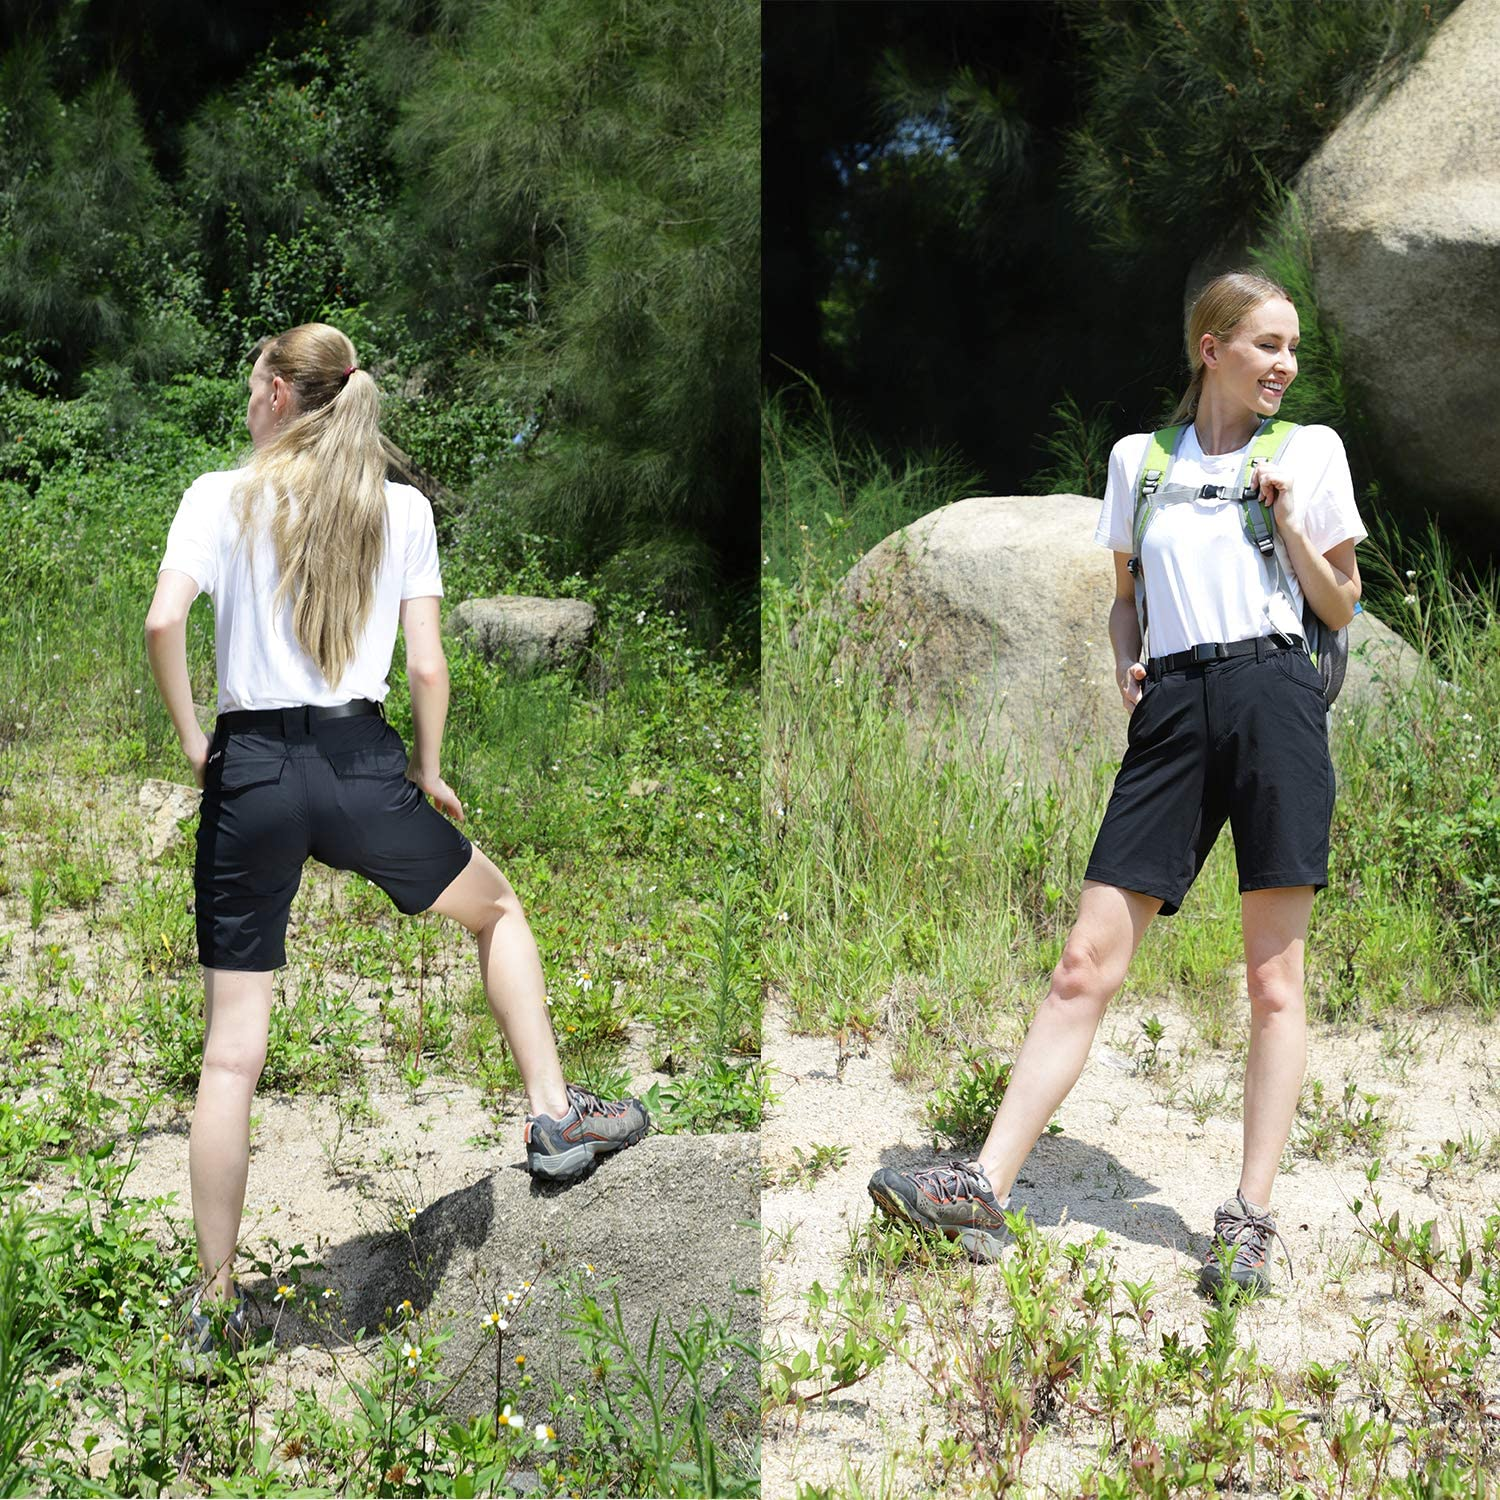 Exclude Belt MIER Womens Quick Dry Hiking Shorts Stretchy Shorts,Water Resistant and Lightweight